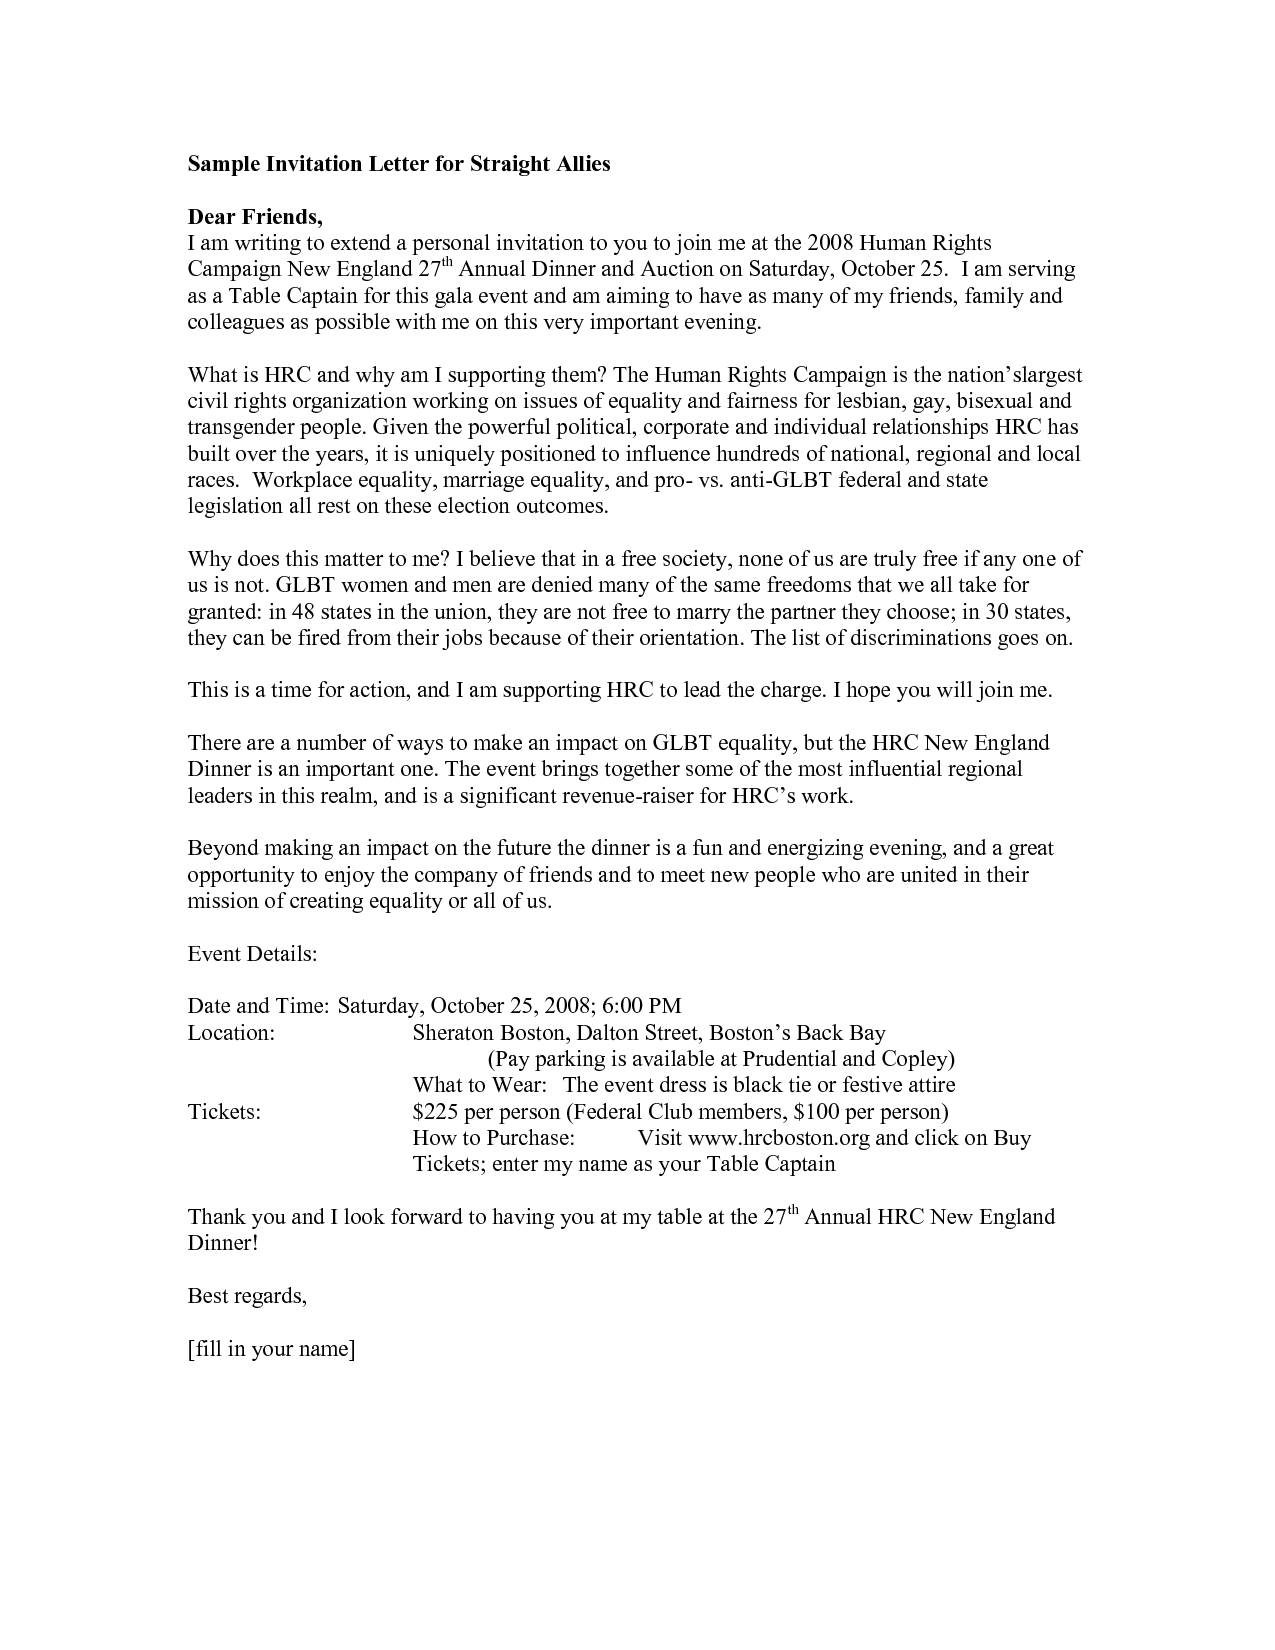 How To Write A Invitation Letter For Dinner Fiveoutsiderscom